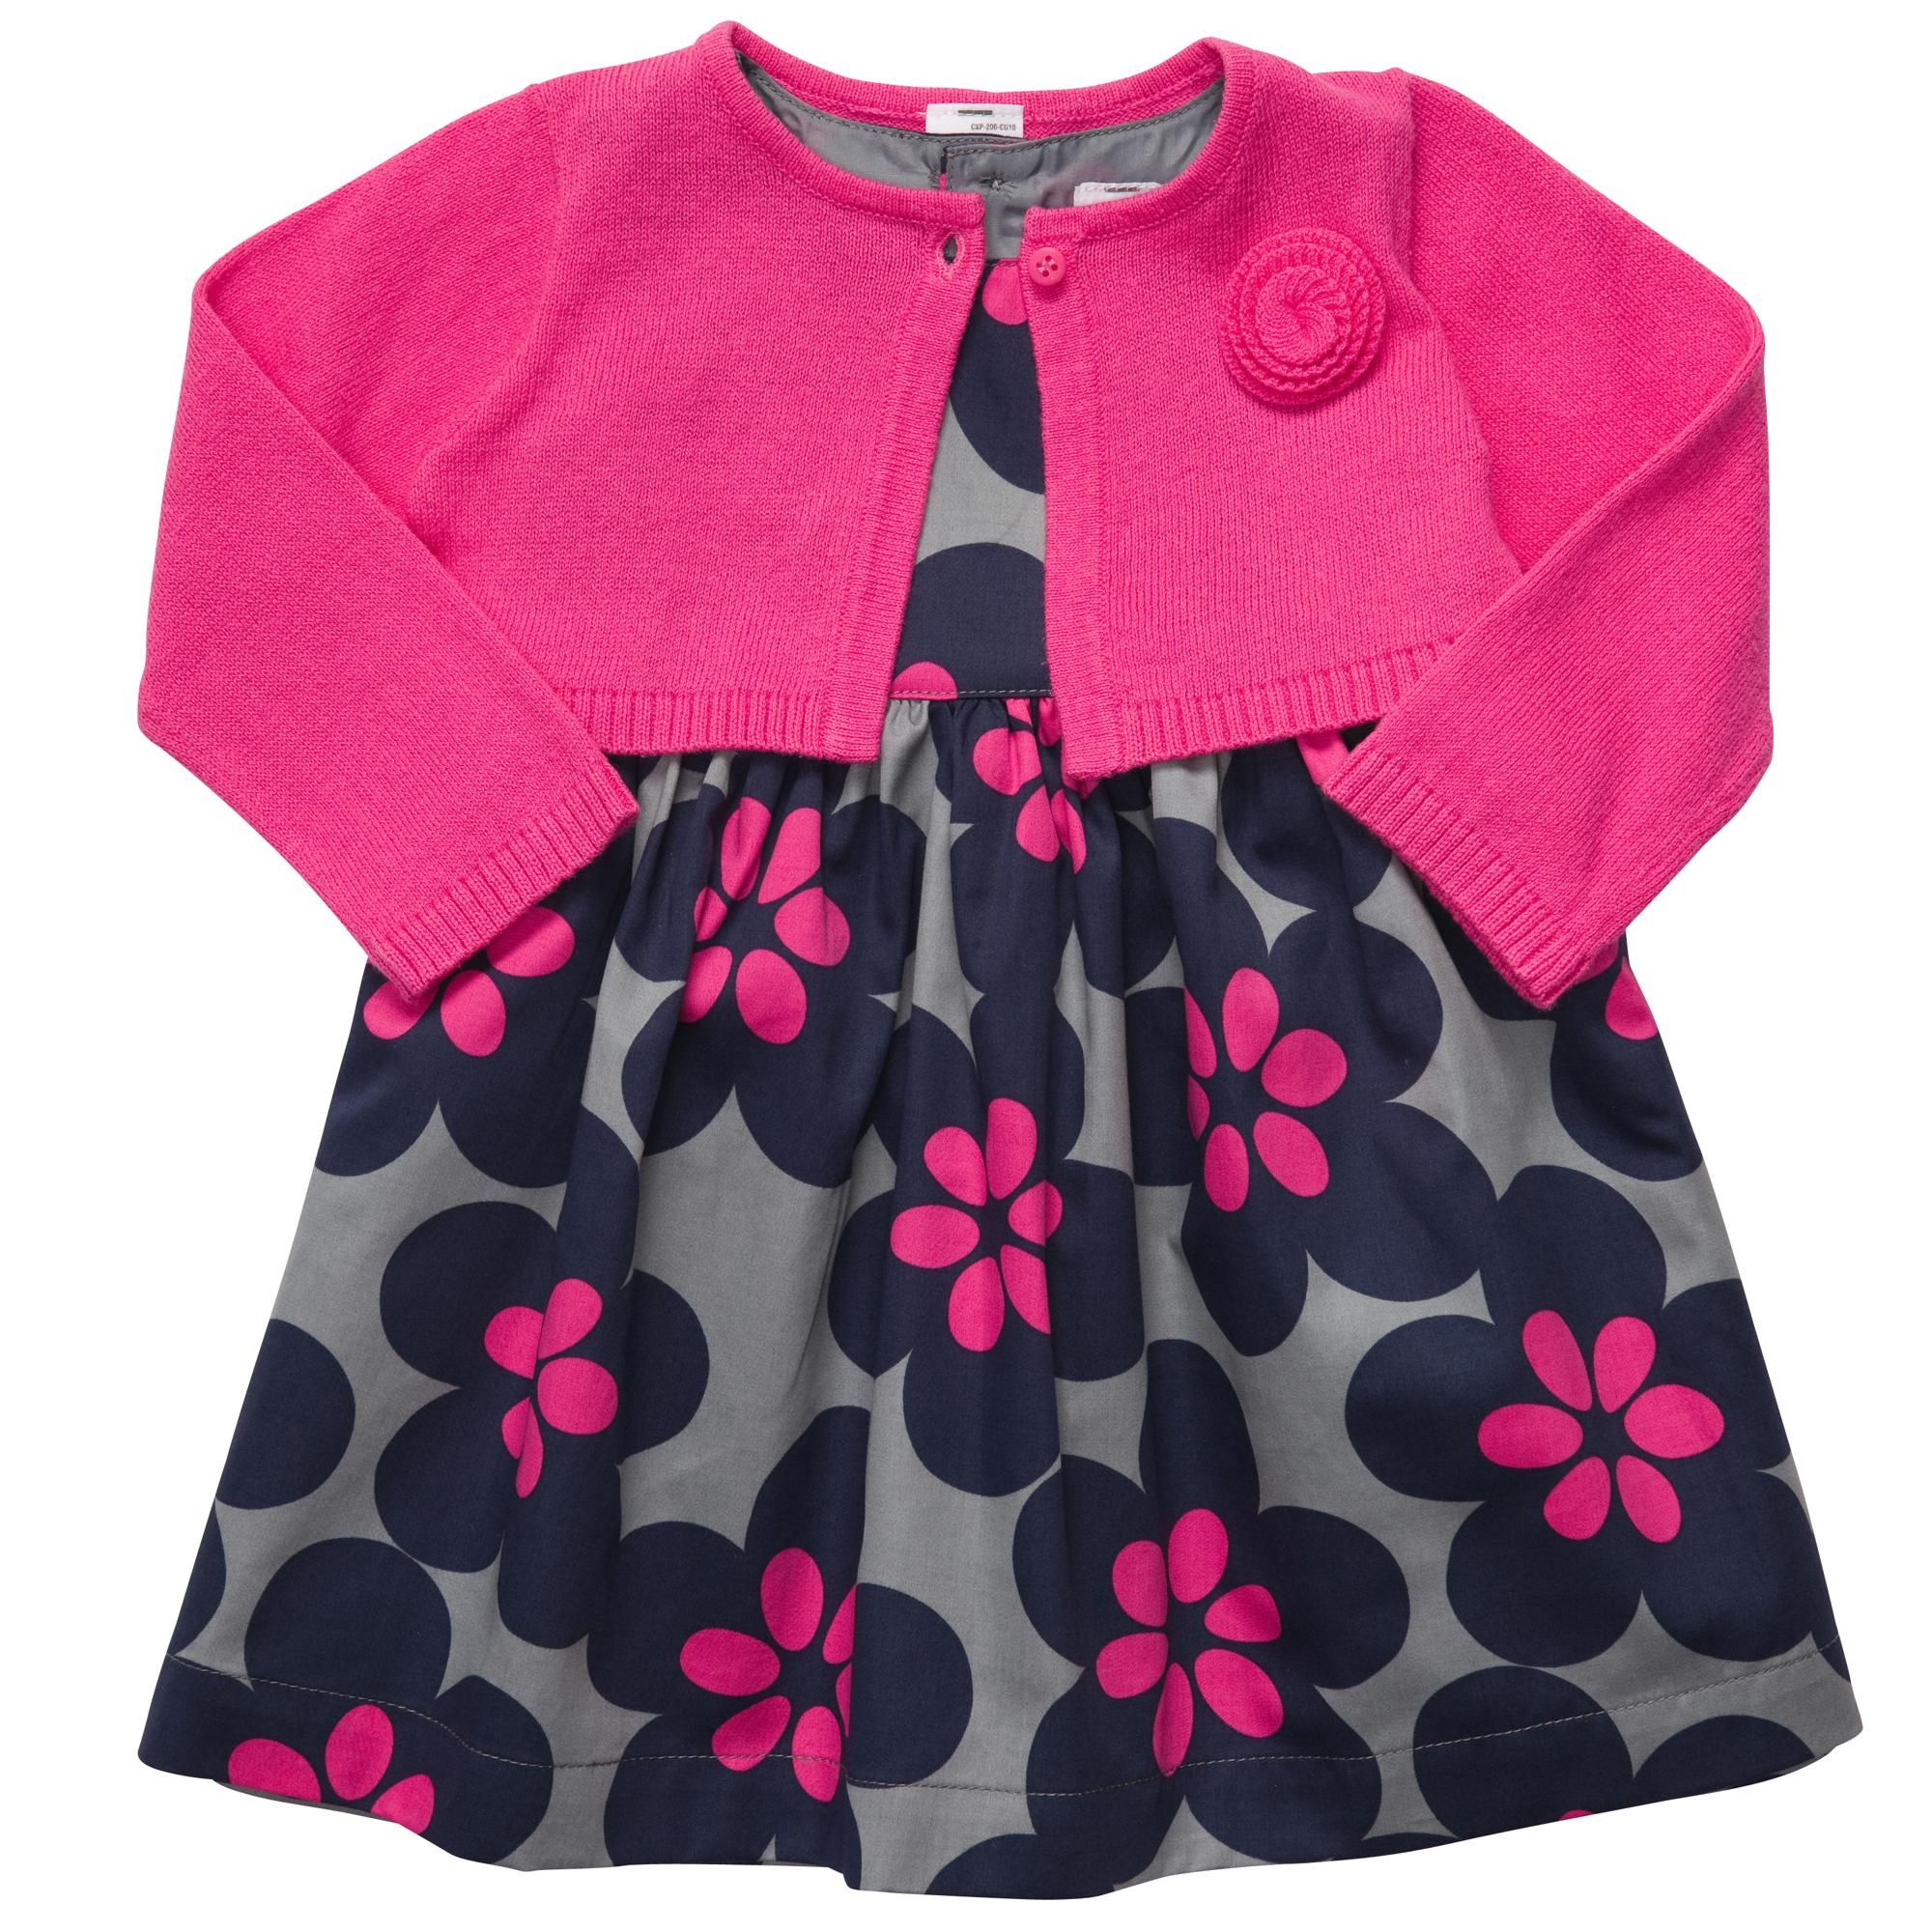 Carters Baby Girl Dresses Newest and Cutest Baby Clothing